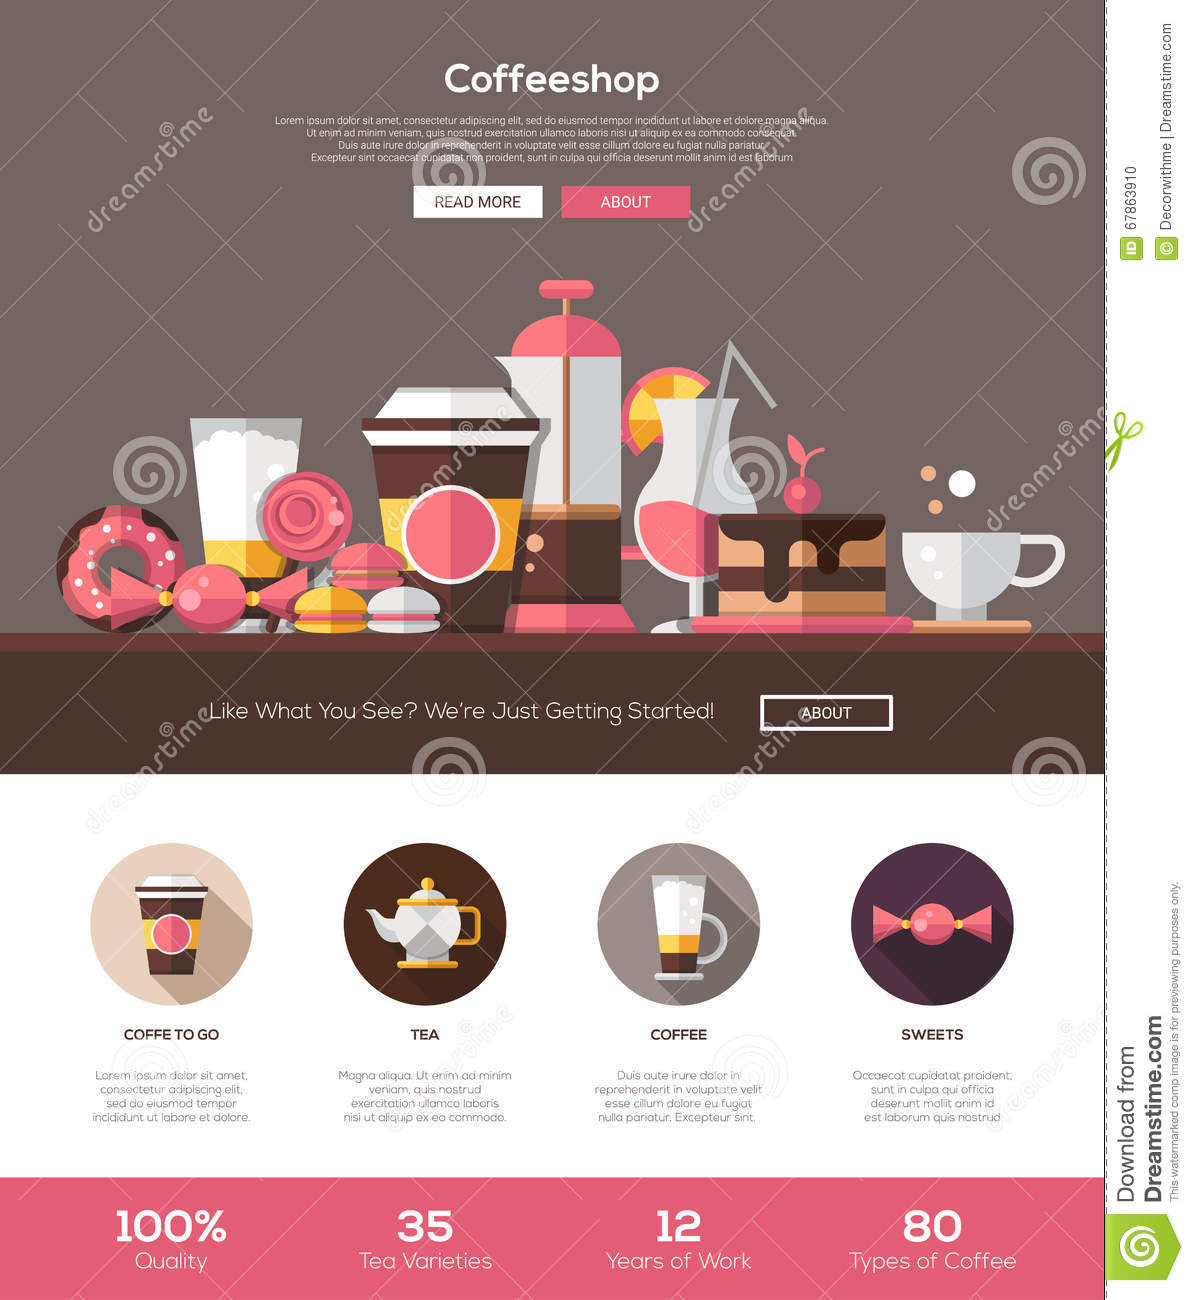 coffee shop cafe bakery website template with header and icons stock vector image 67863910. Black Bedroom Furniture Sets. Home Design Ideas